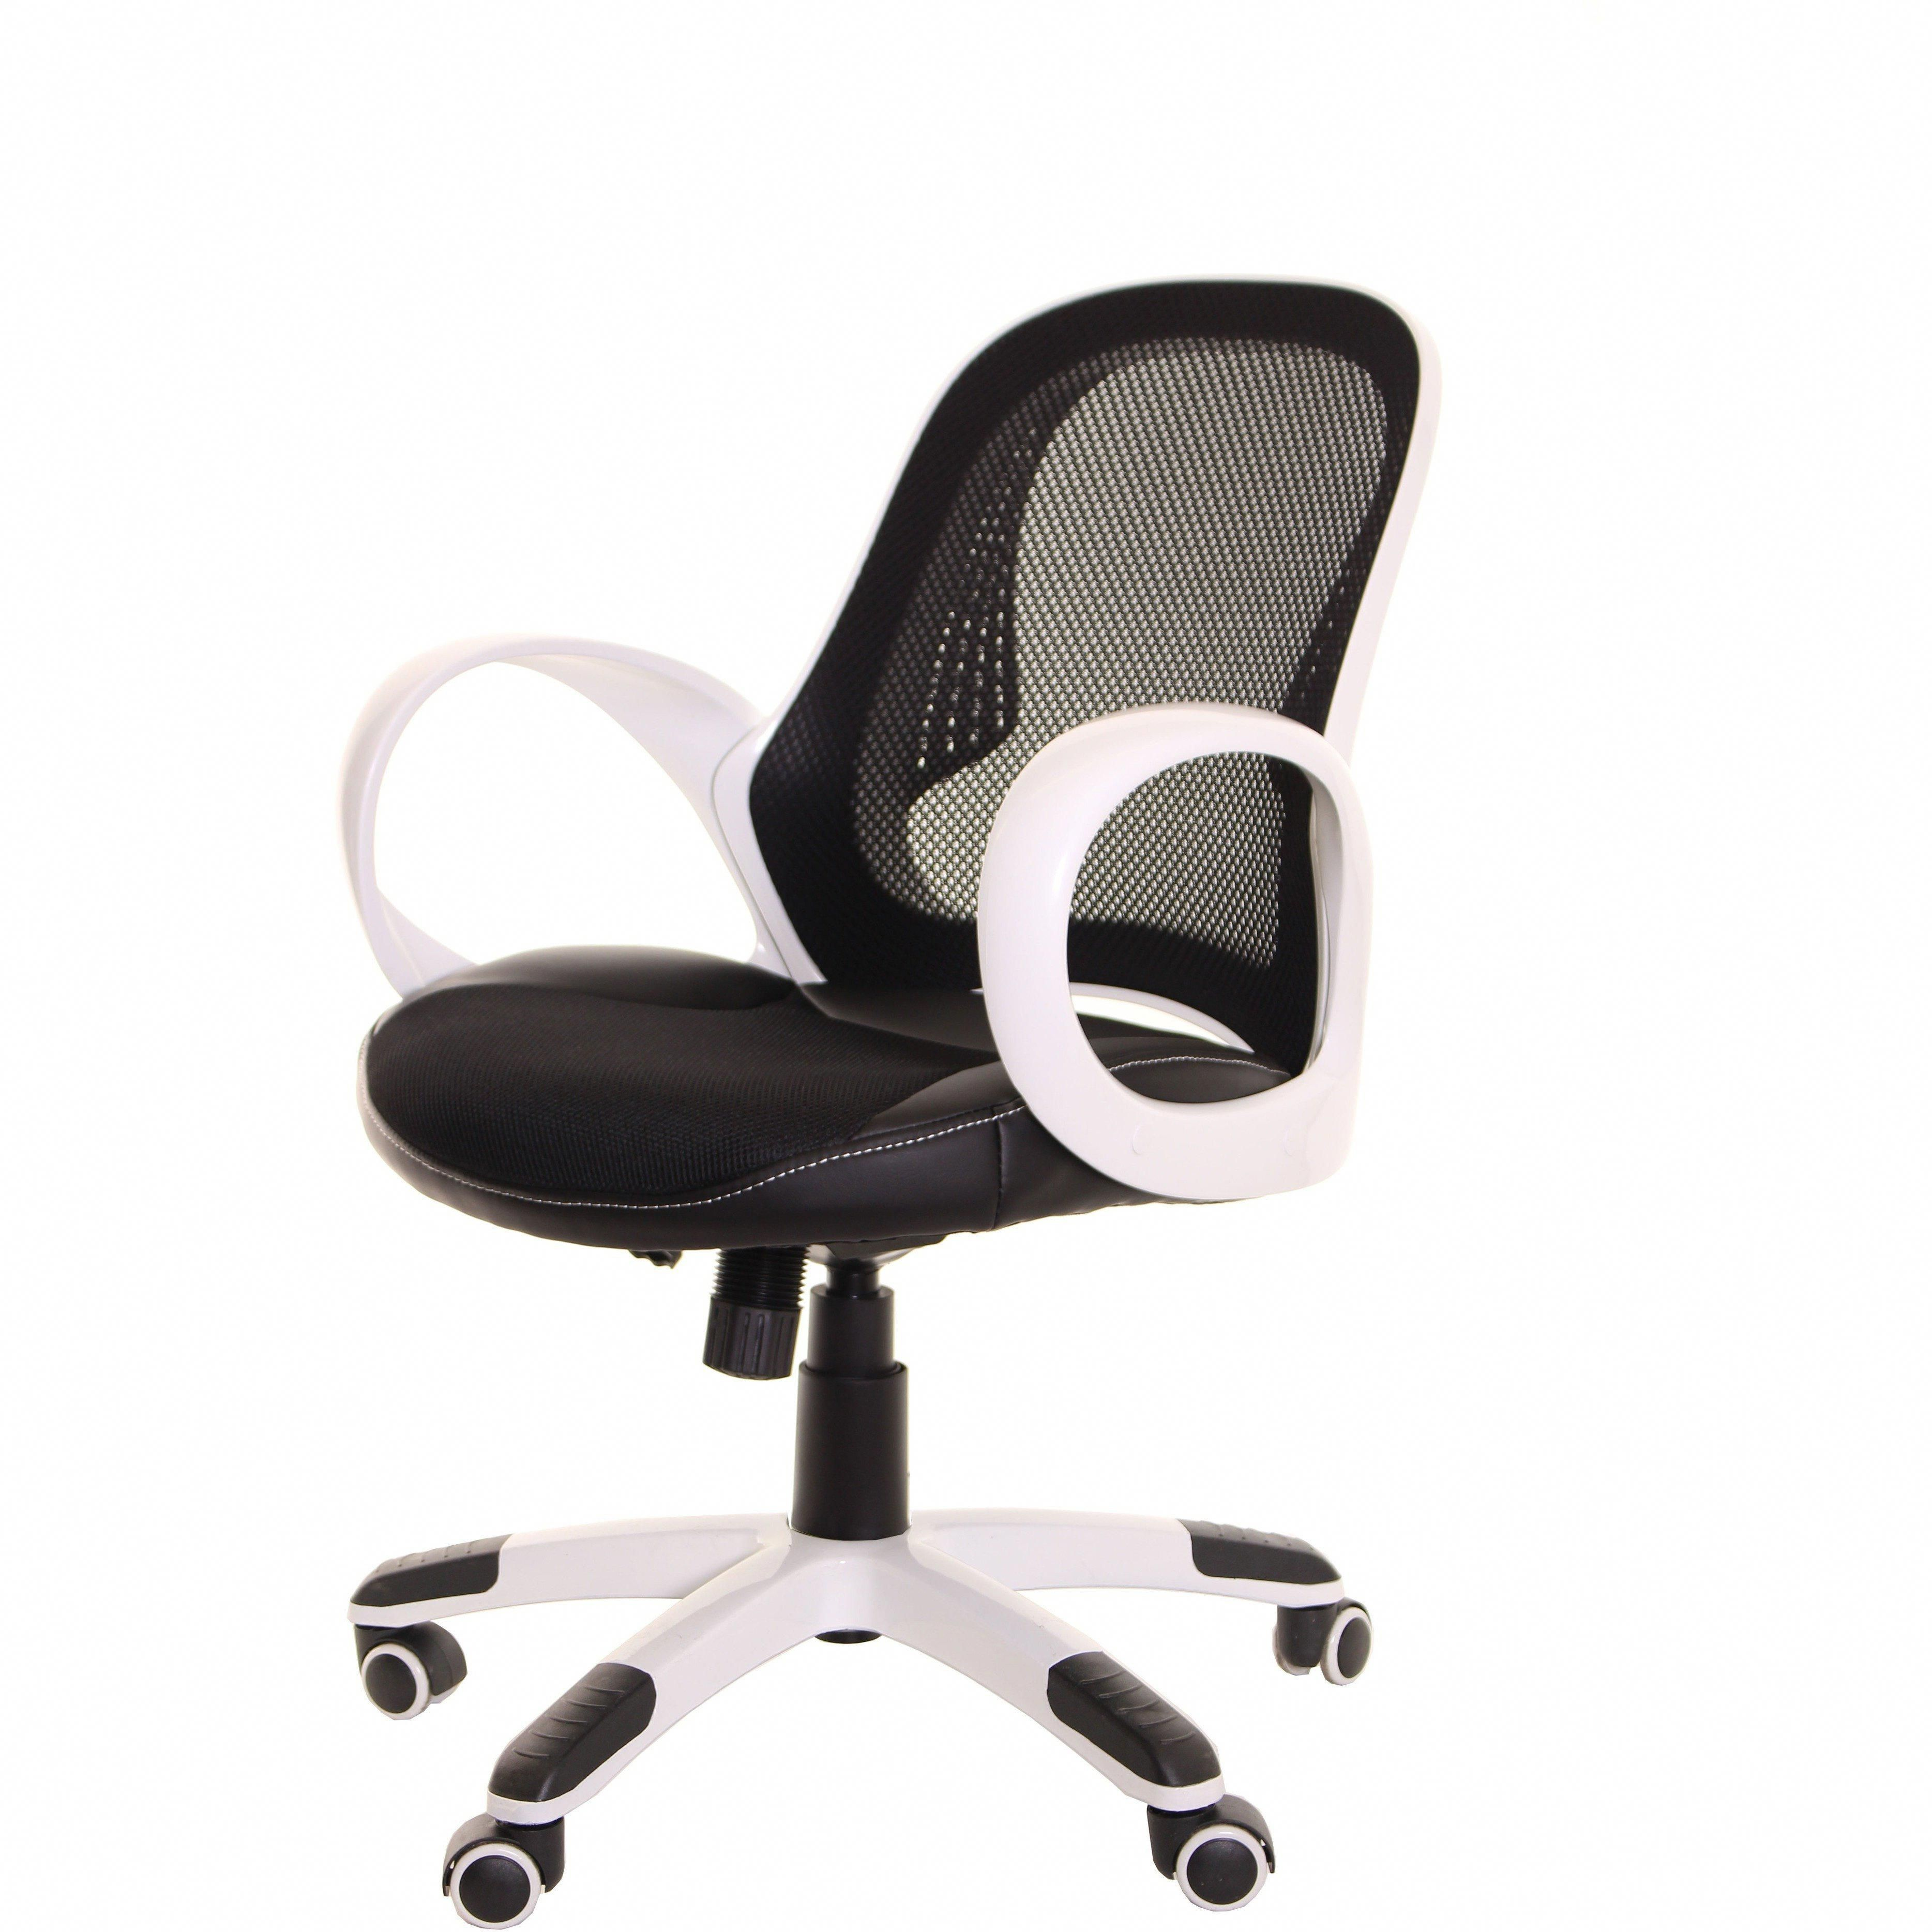 Herman Miller Aeron Chair Size B Bigcomfychairfortwo